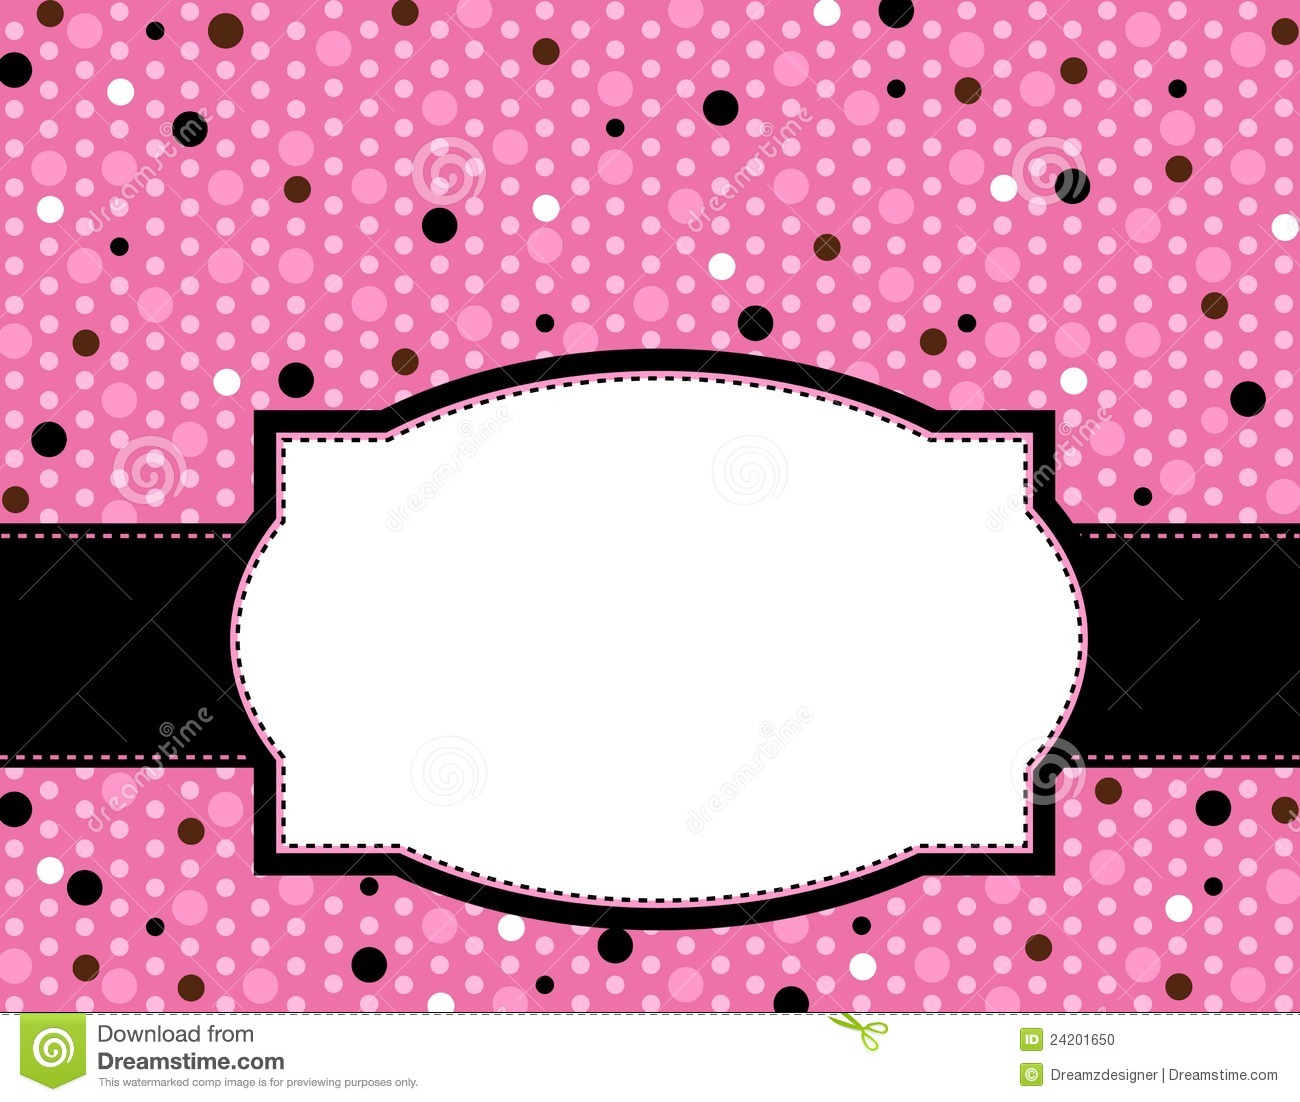 Cute Doodle Wallpaper Hd Polka Frame Background Stock Photo Image 24201650